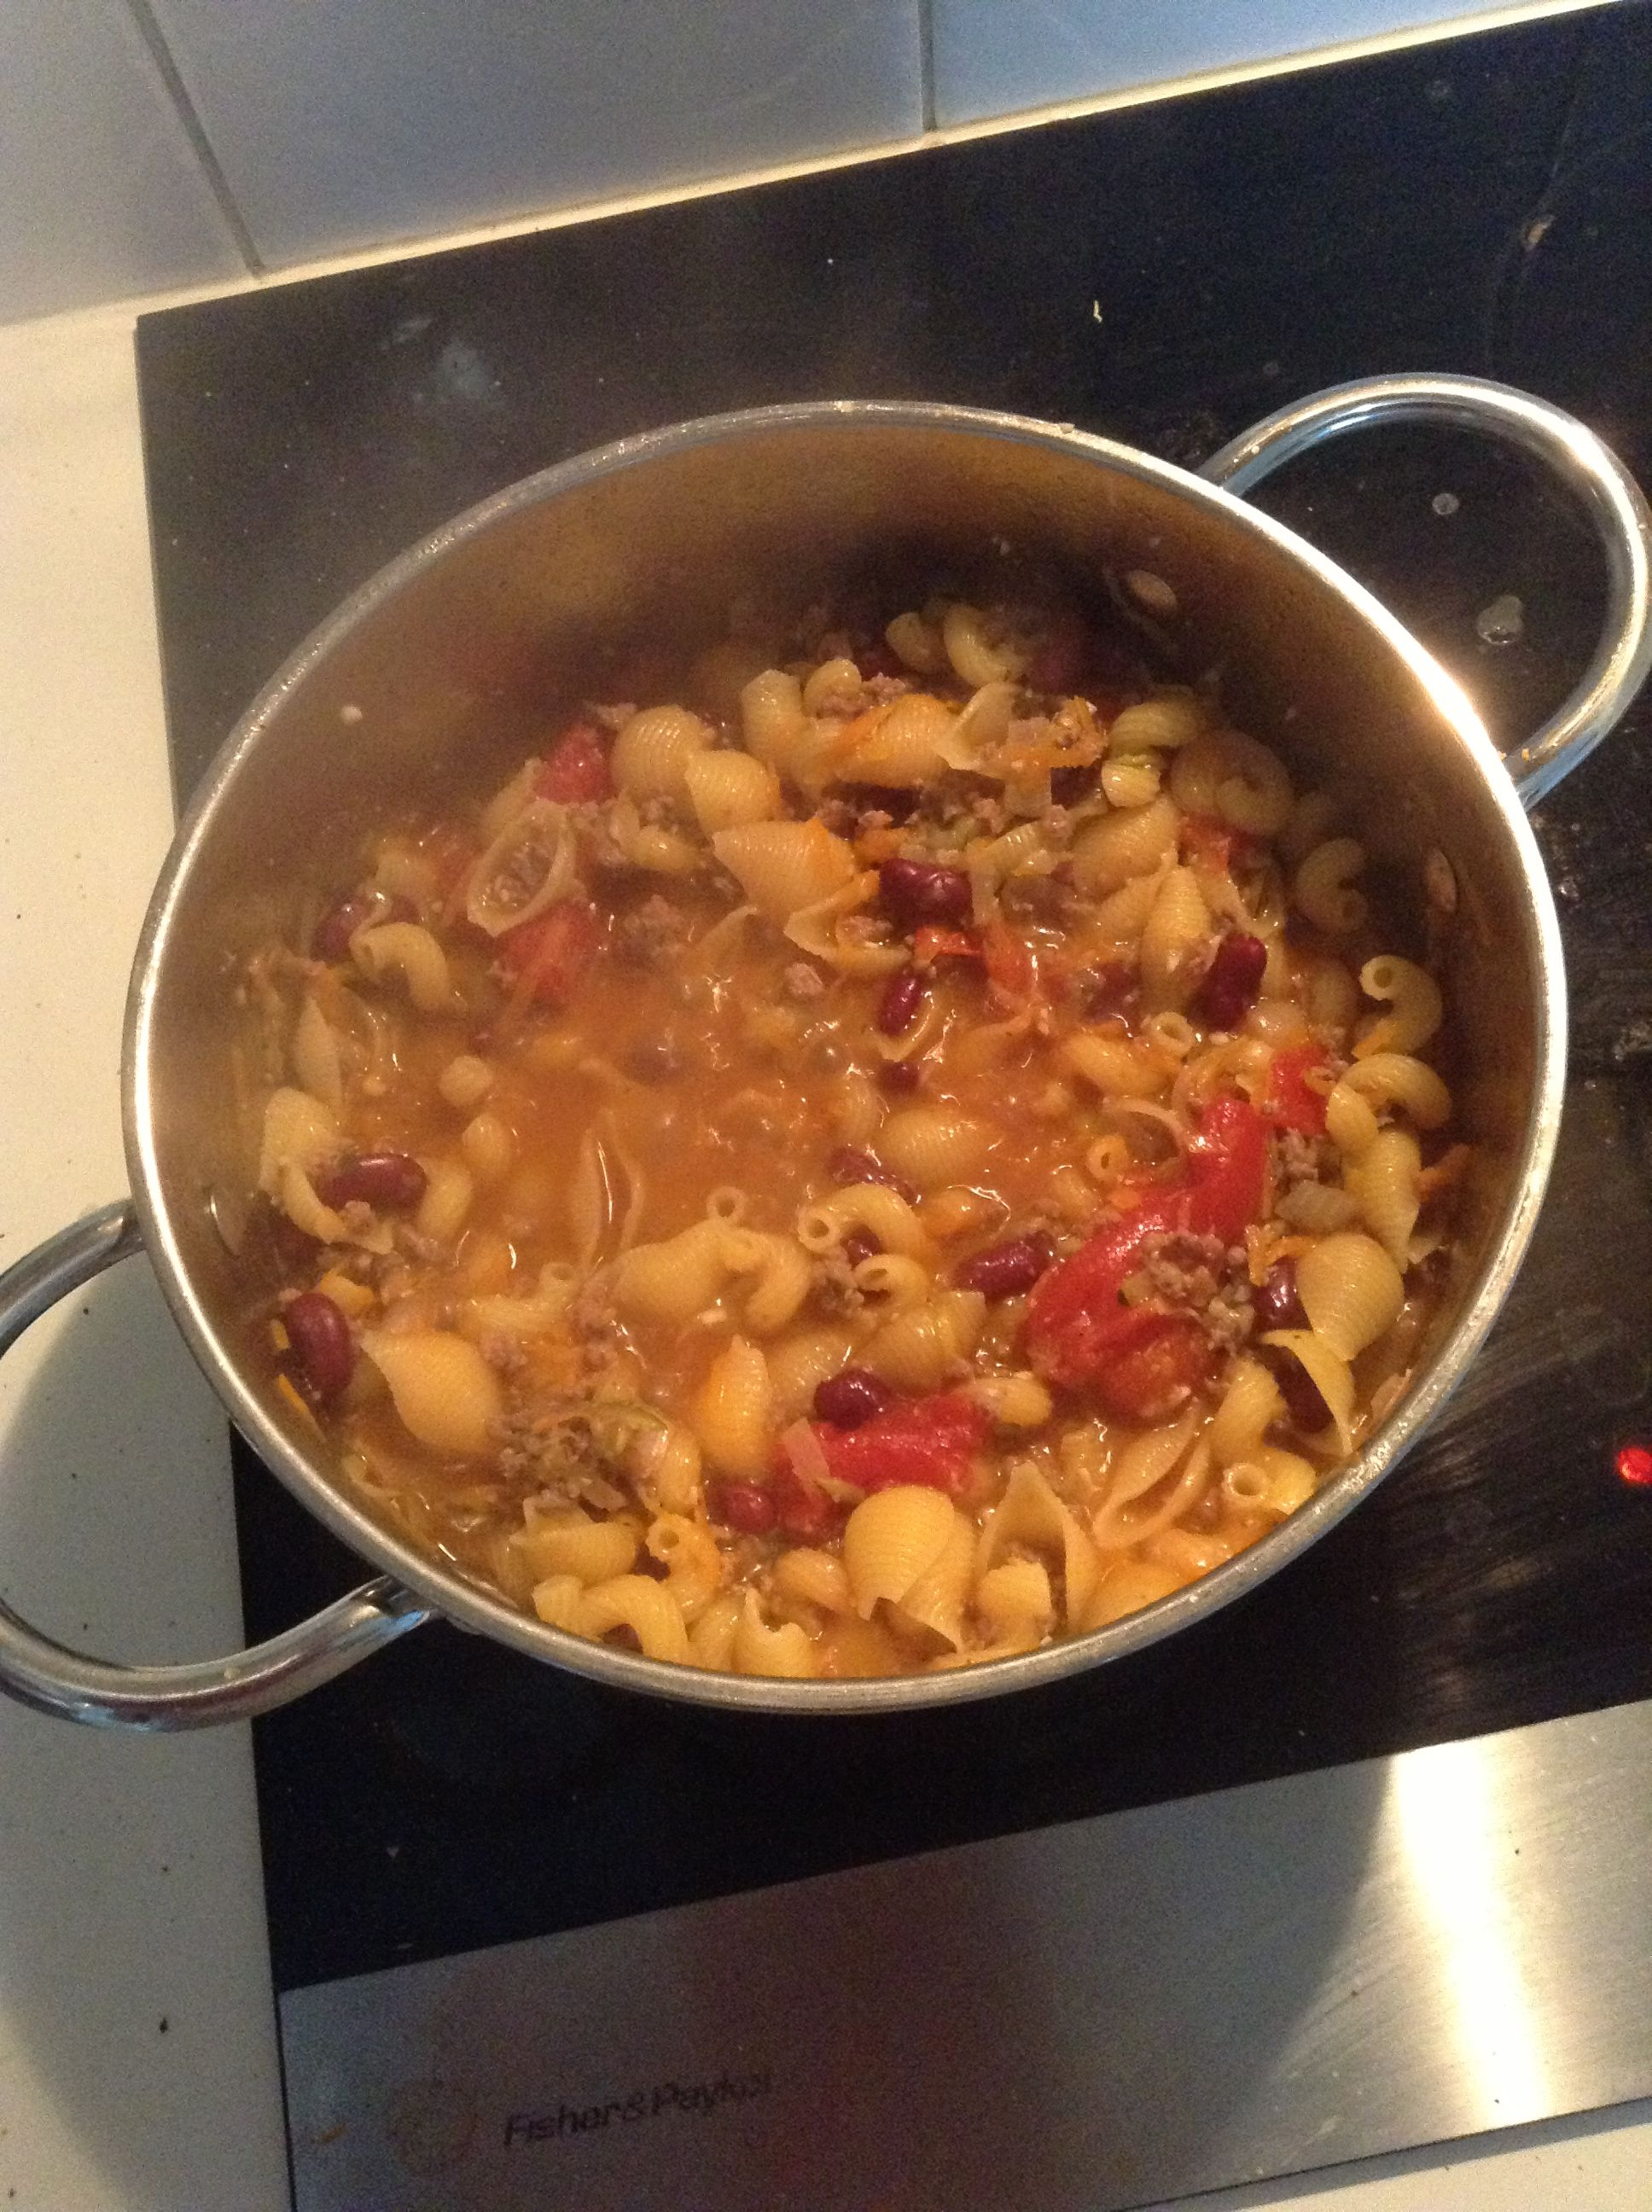 Nigella's One Pot Beef and Beans with Pasta. So delicious